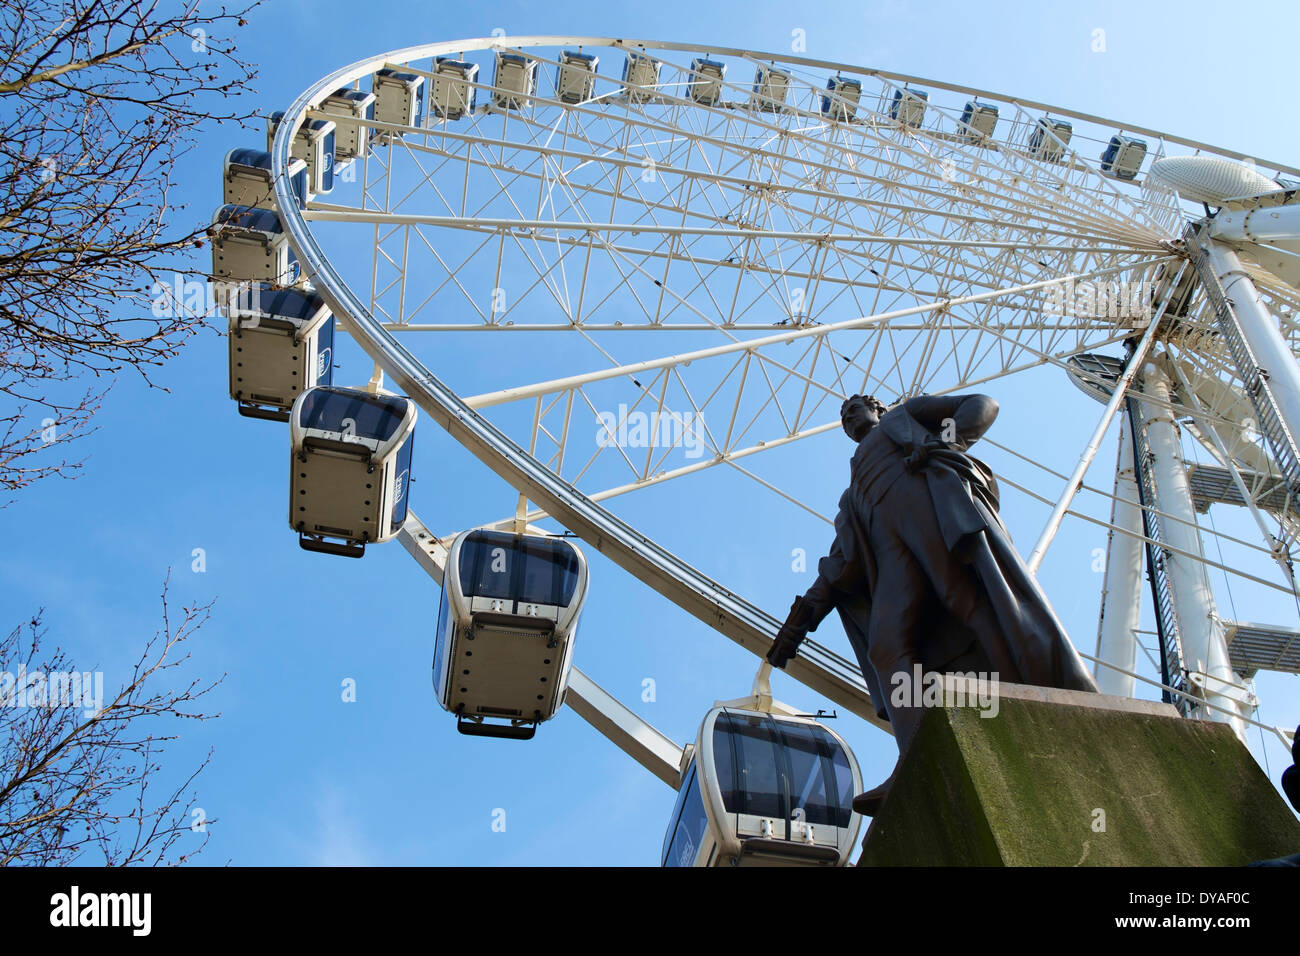 The Wheel of Manchester behind a statue of W C Marshall, Piccadilly Gardens, Manchester, England, UK - Stock Image